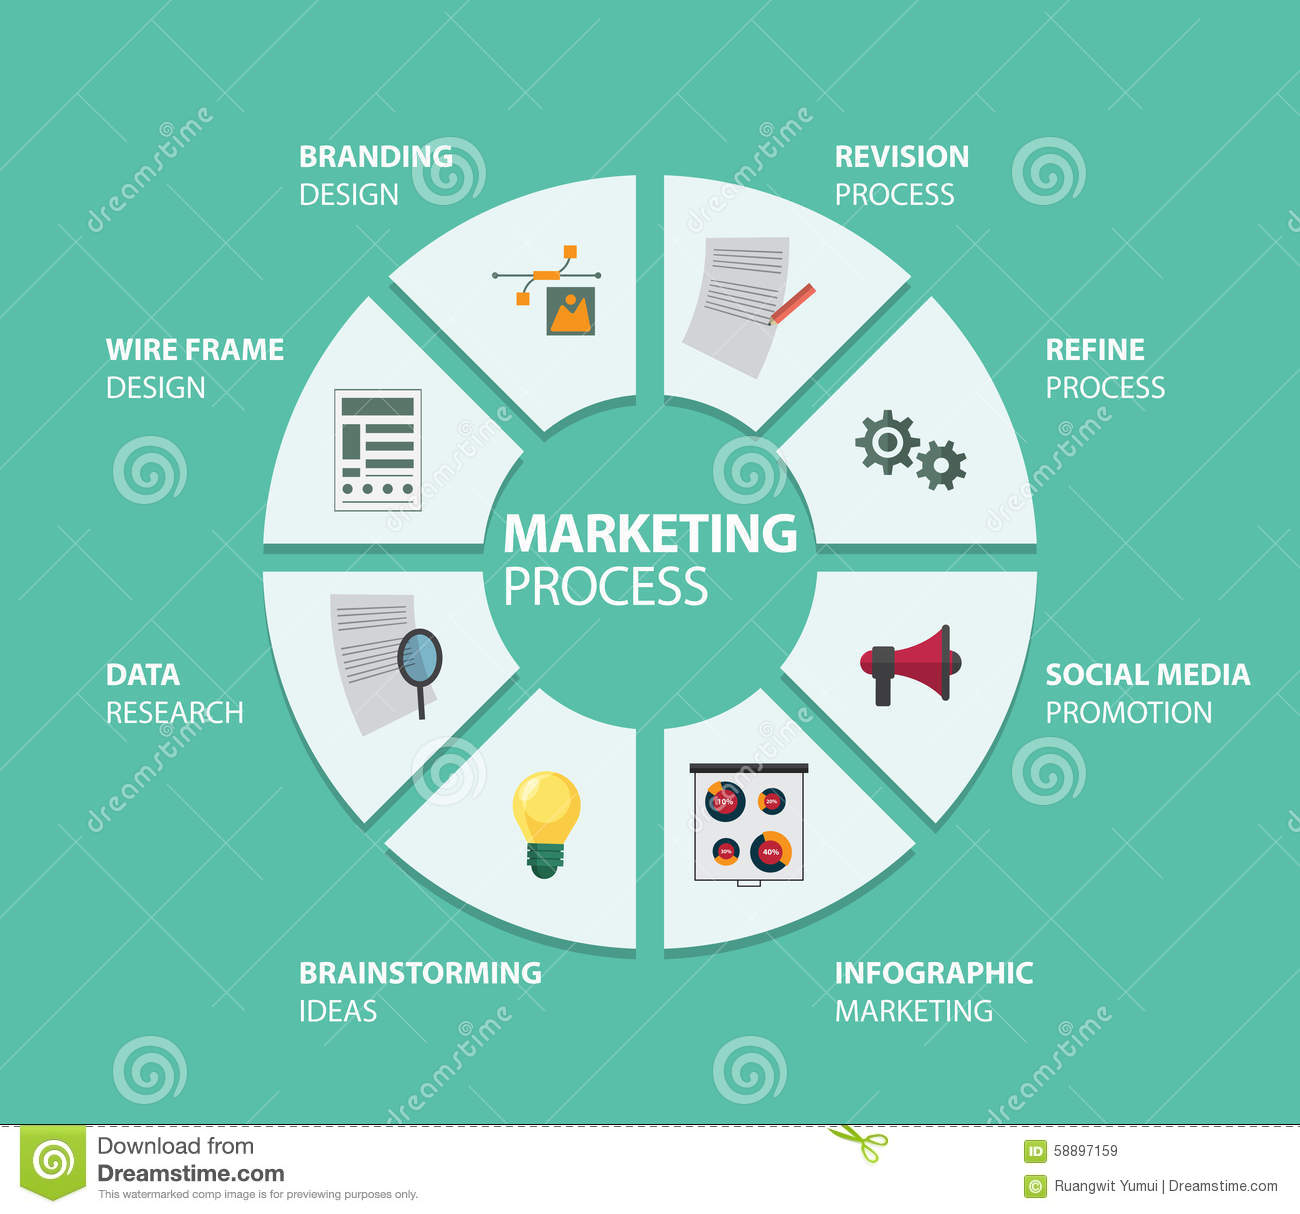 key-business-marketing-timeline-infographic-template-flat-design-vector-illustration-58897159.jpg